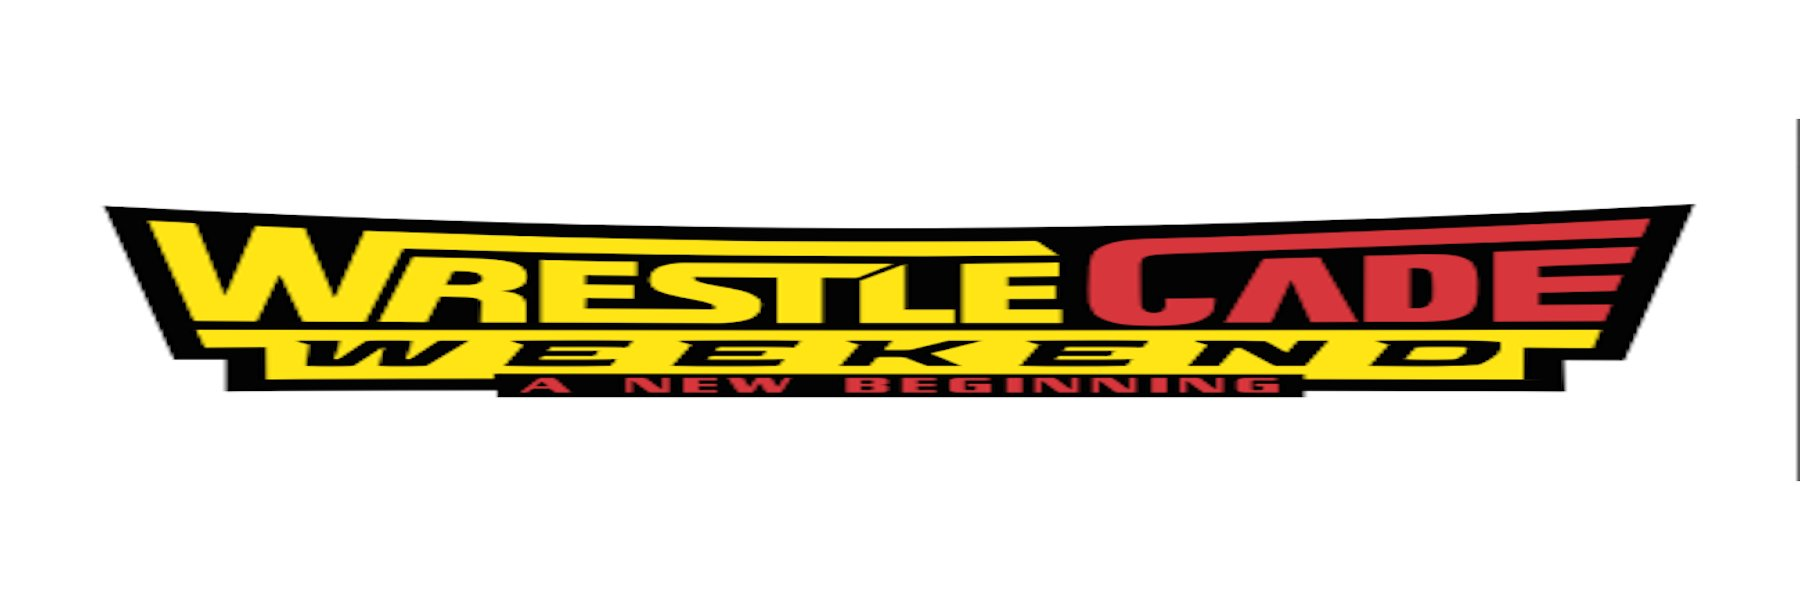 WOW!! Events from Past WrestleCade Weekends Now available...